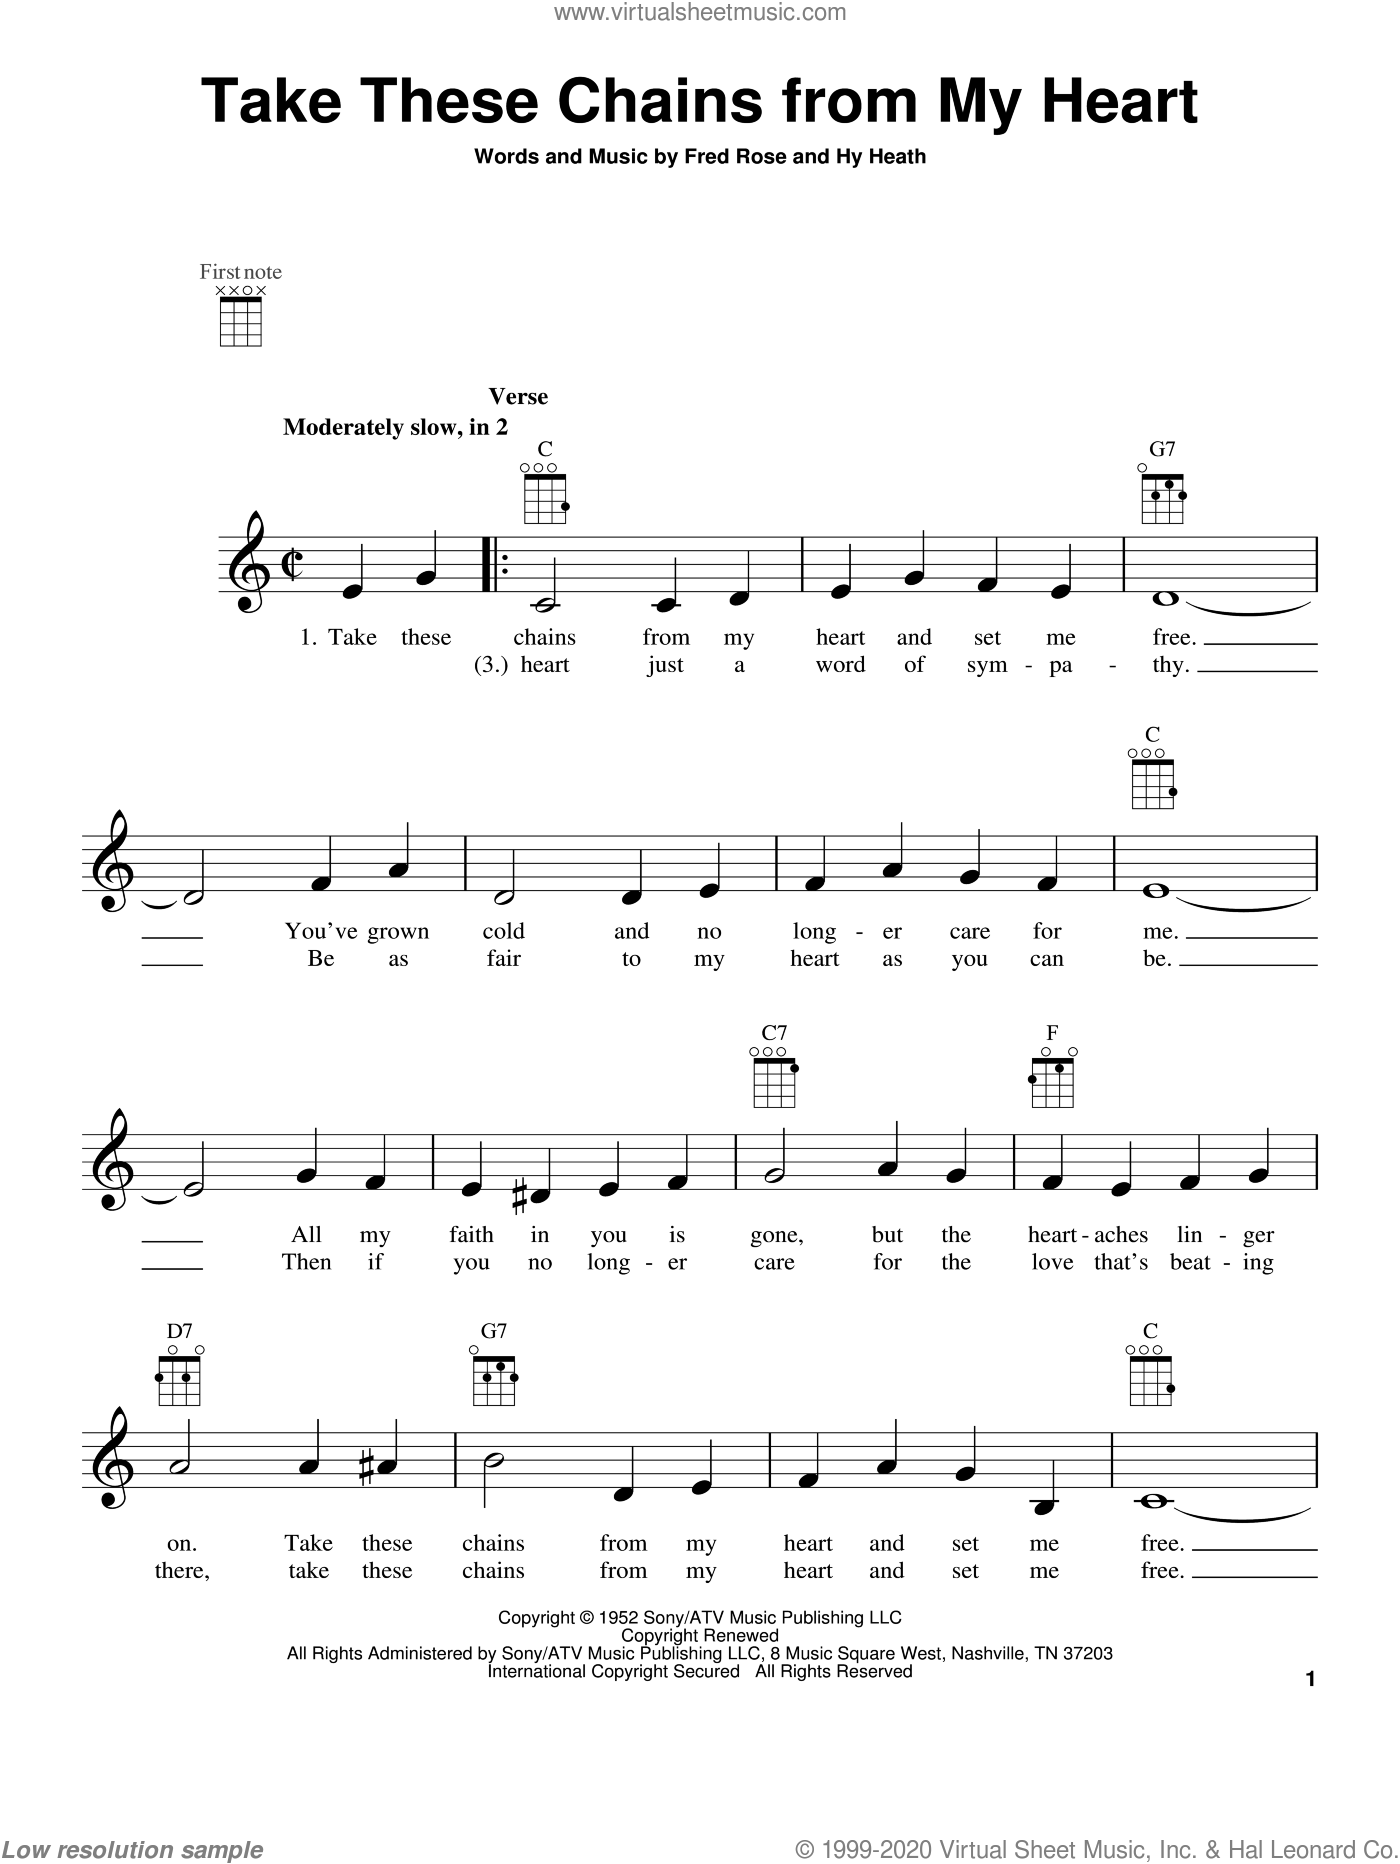 Take These Chains From My Heart sheet music for ukulele by Hank Williams, Fred Rose and Hy Heath, intermediate skill level